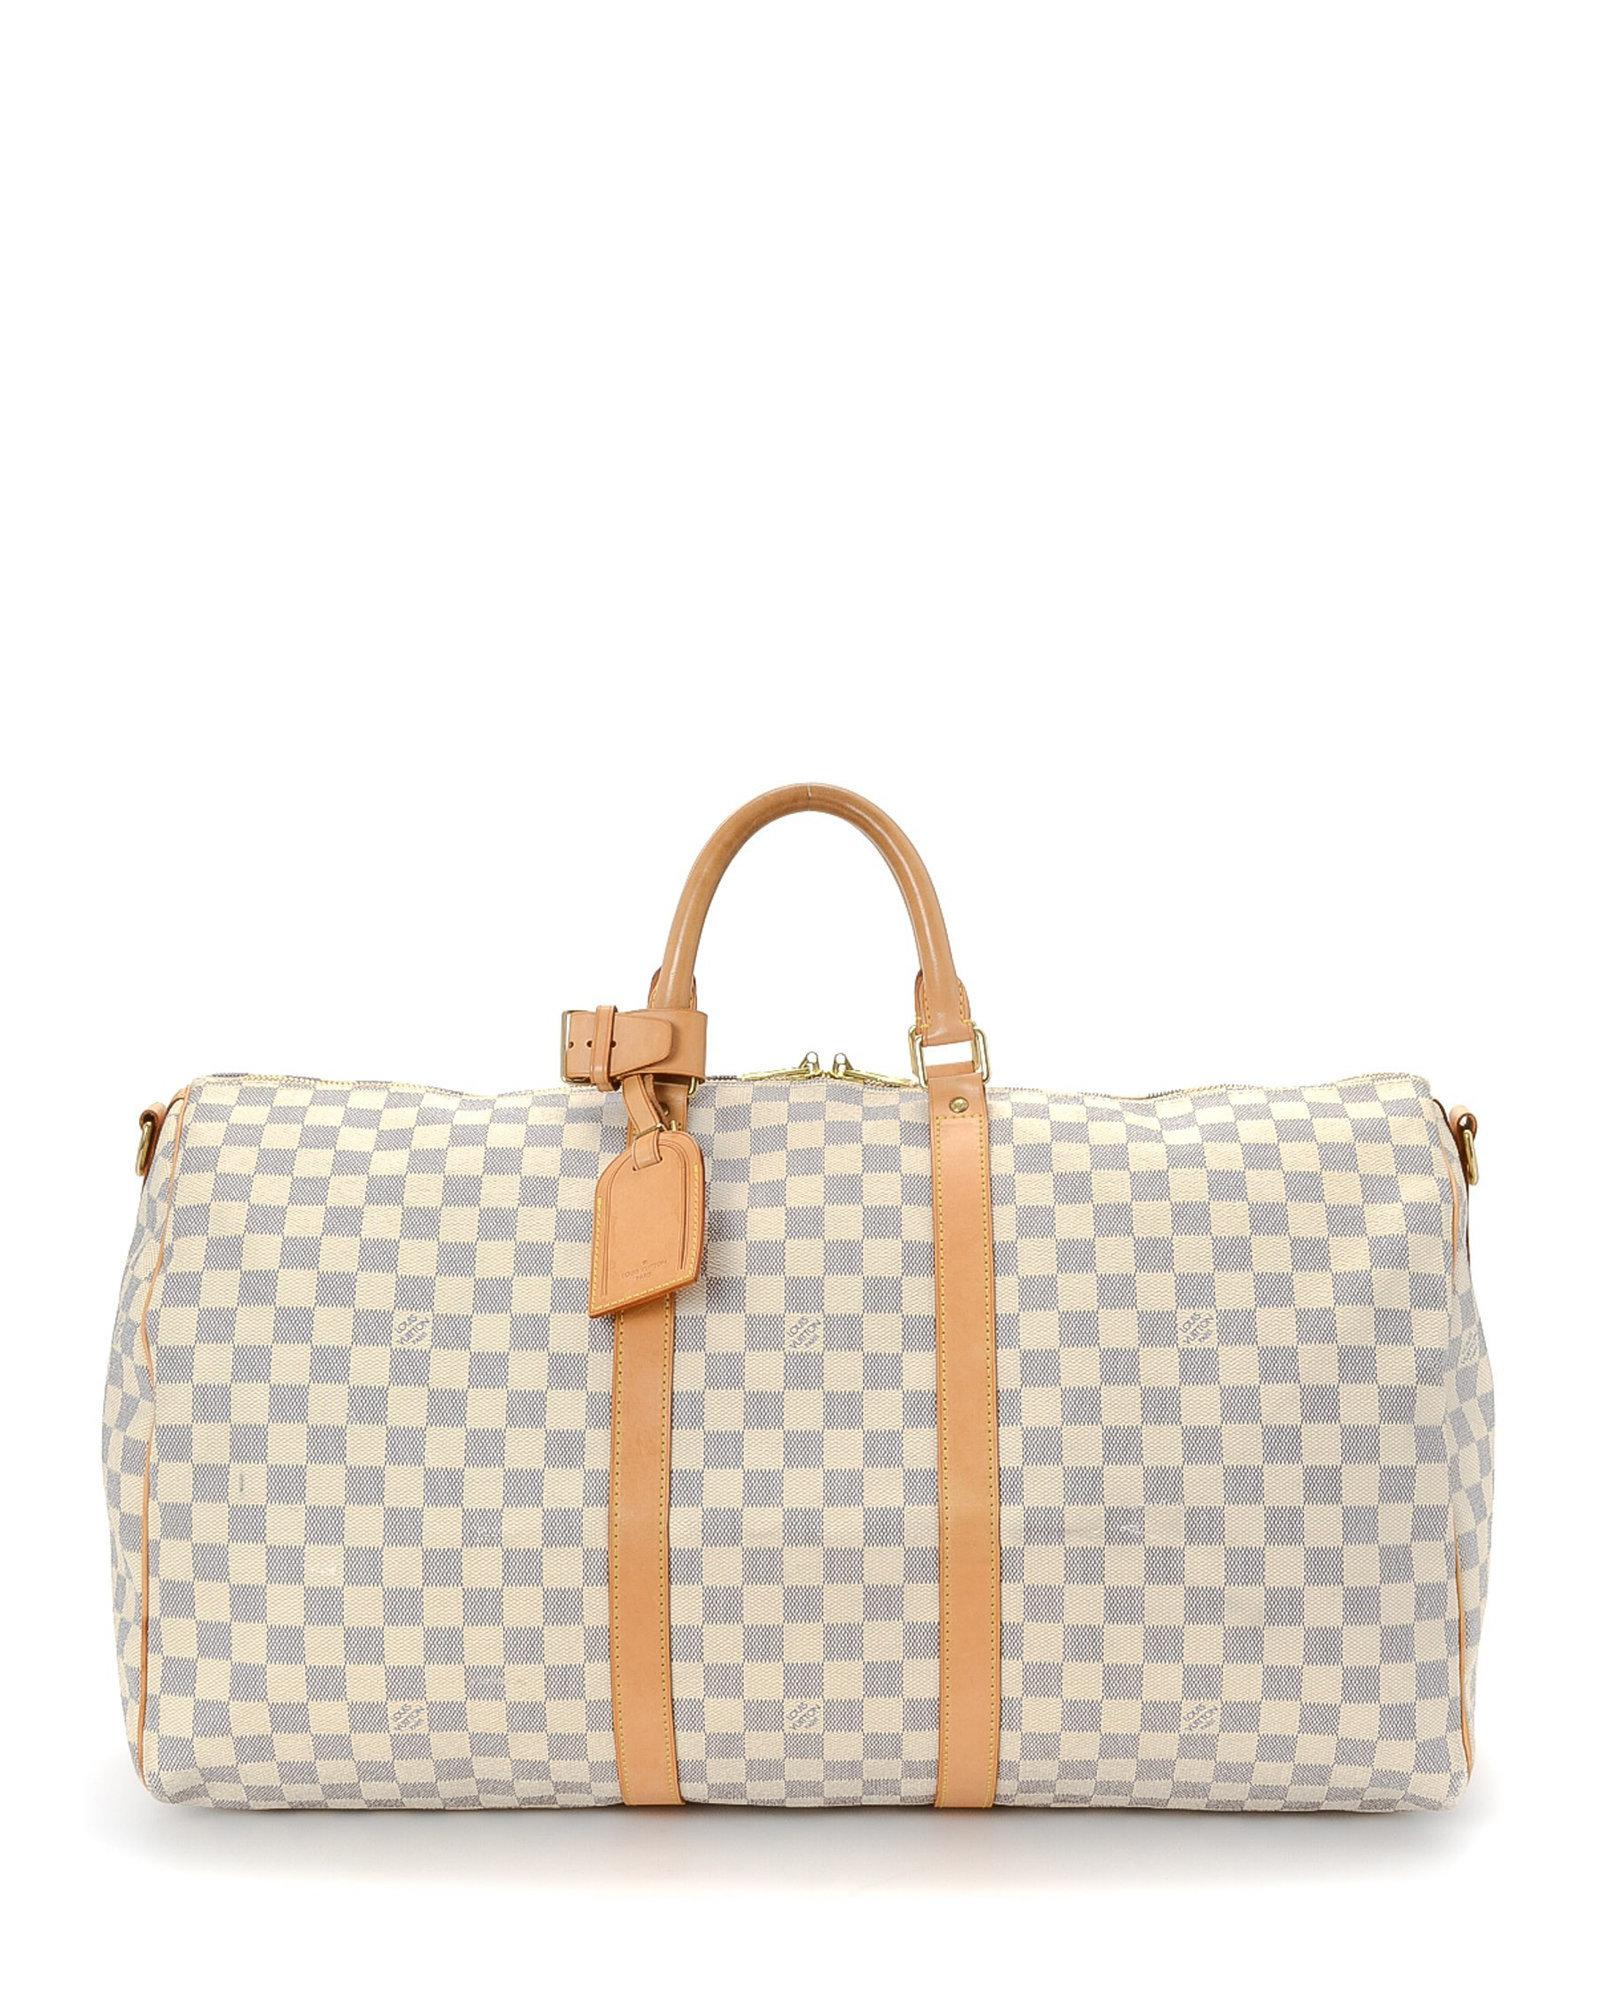 747e74736536 Louis Vuitton Keepall Bandoulière 55 Travel Bag - Vintage in White ...